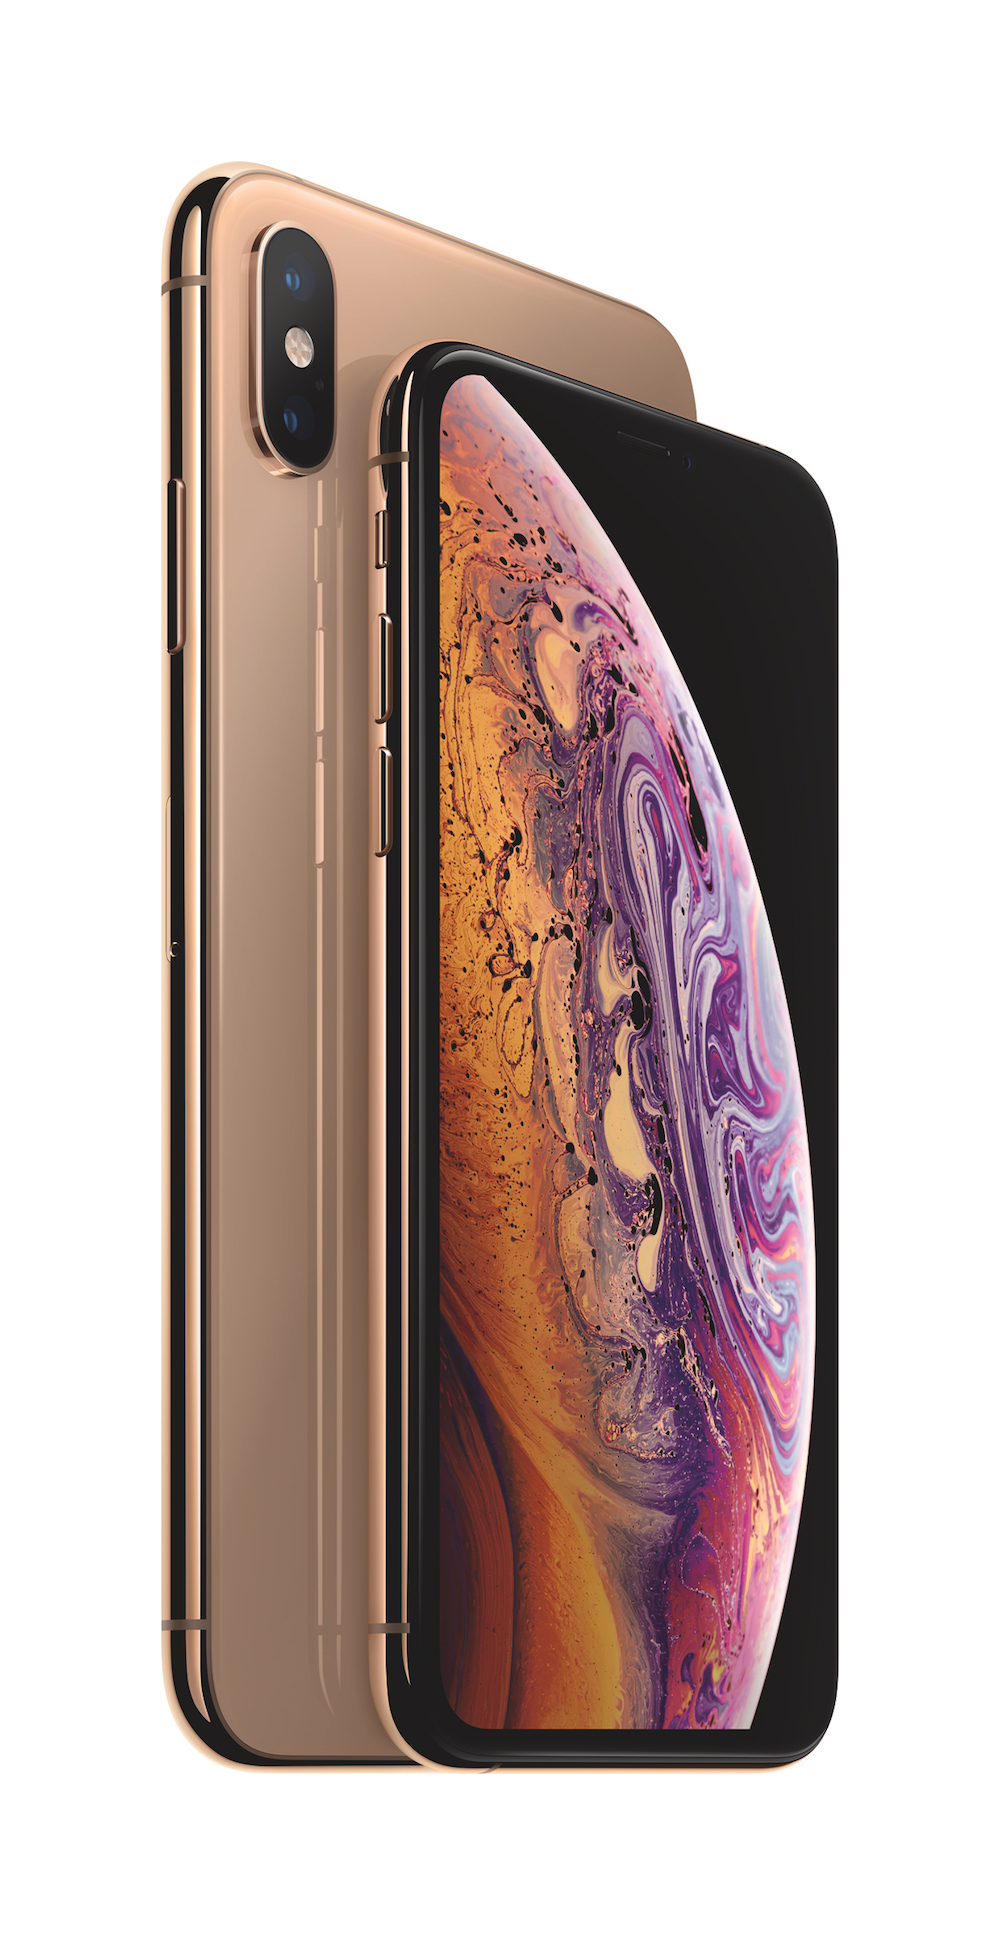 Apple's iPhone Xs and iPhone Xs Max